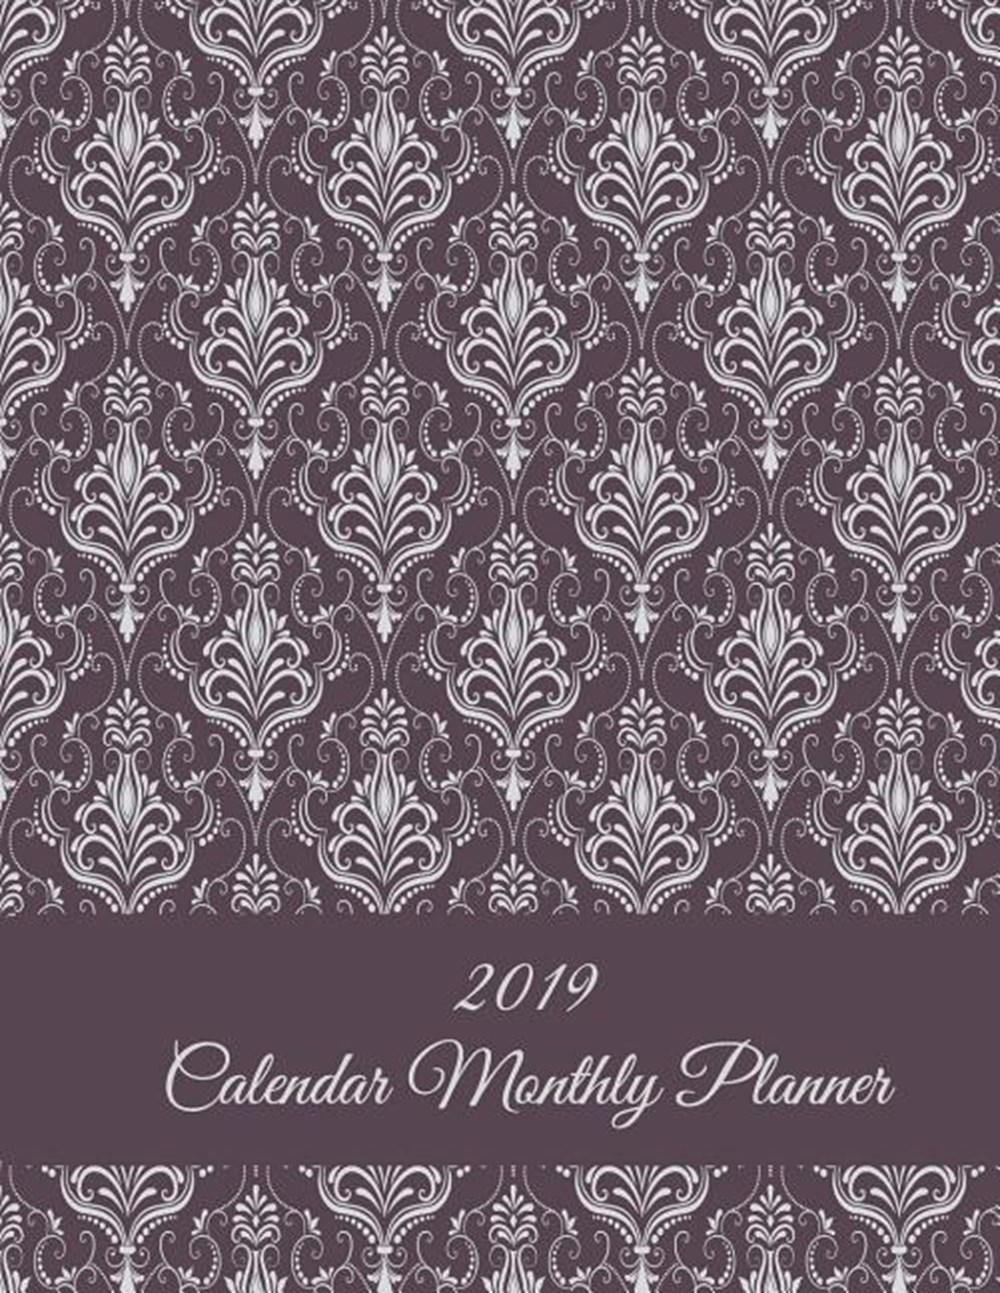 2019 Calendar Monthly Planner Floral Garden, Monthly Calendar Book 2019, Weekly/Monthly/Yearly Calen